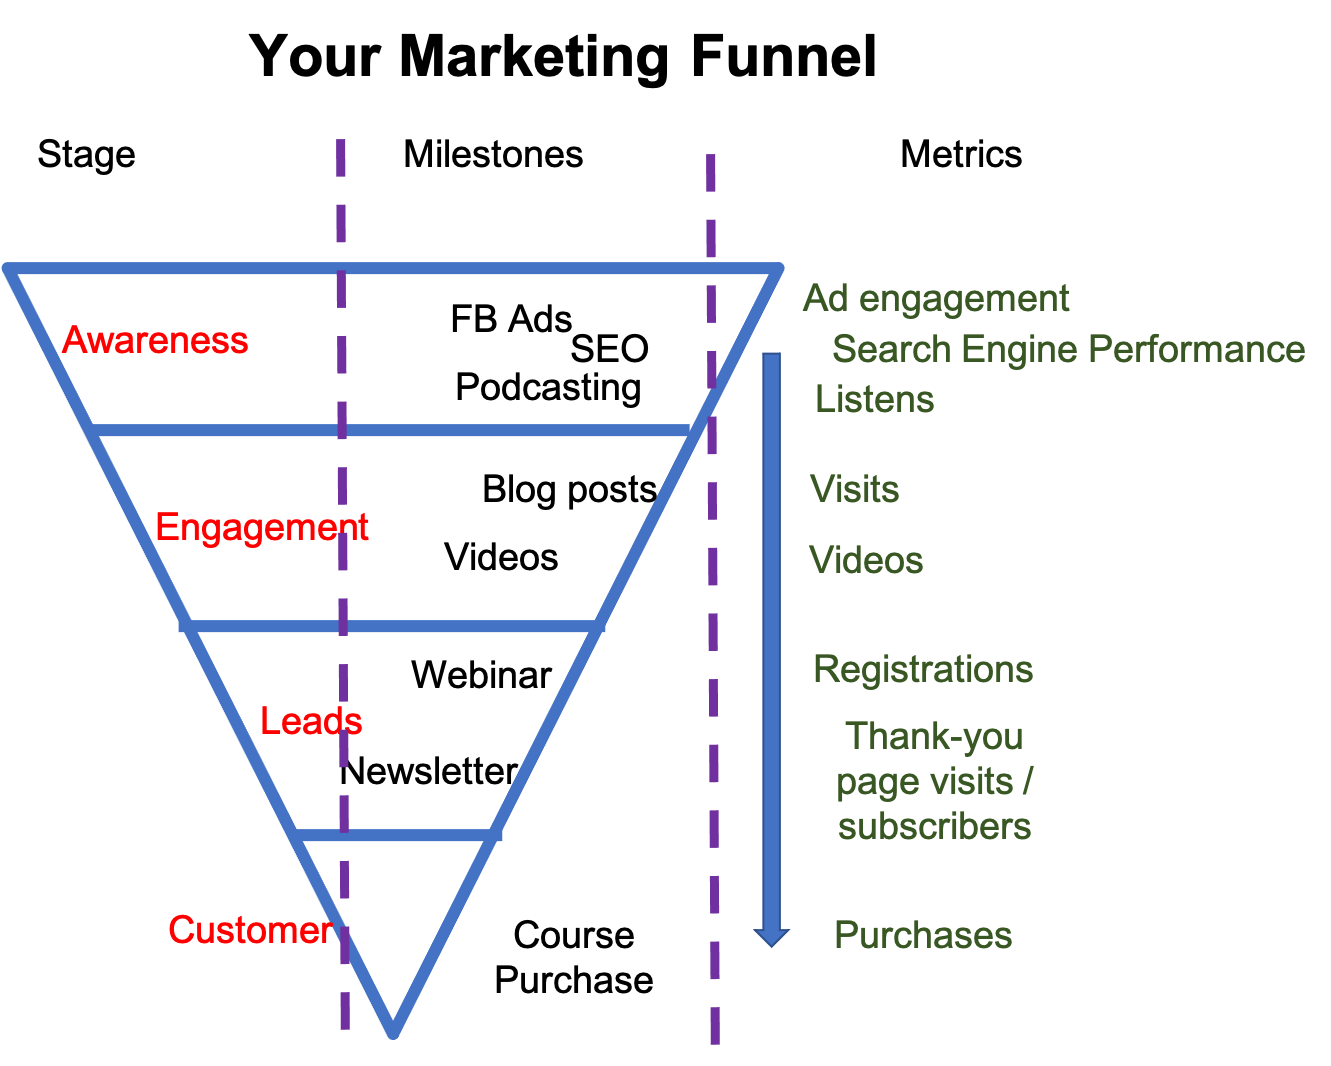 Graphic of a marketing funnel with stages, sample milestones, and sample metrics